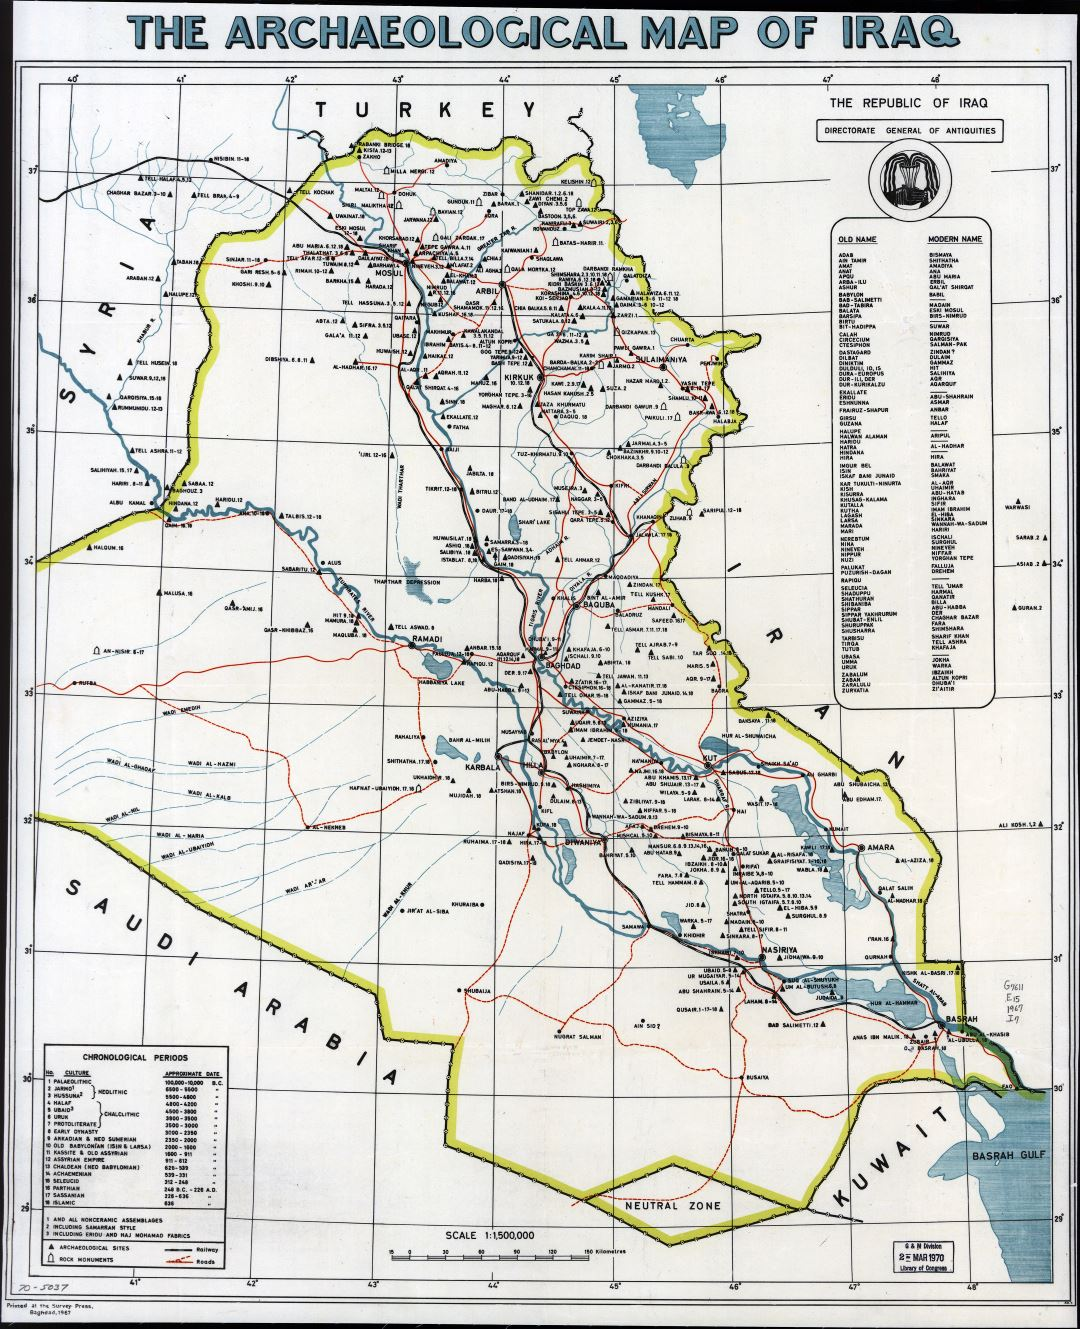 Large scale archaeological map of Iraq - 1967